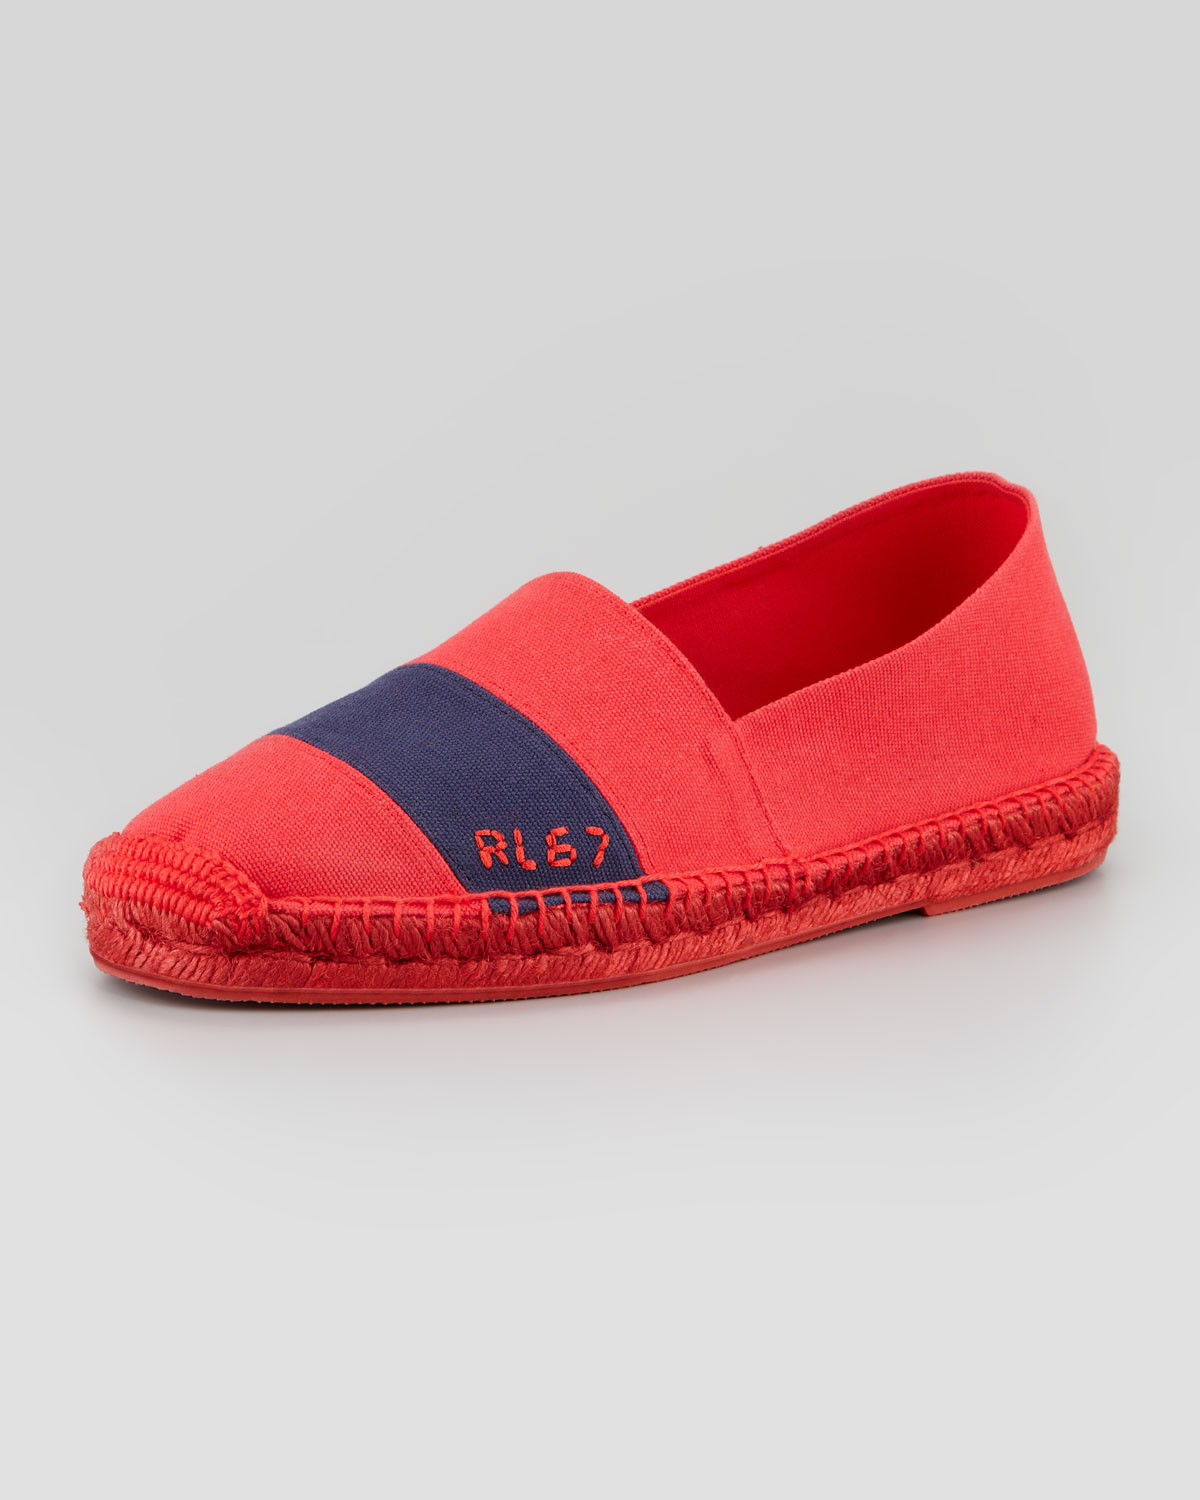 ralph lauren rl67 striped canvas espadrille red in red lyst. Black Bedroom Furniture Sets. Home Design Ideas